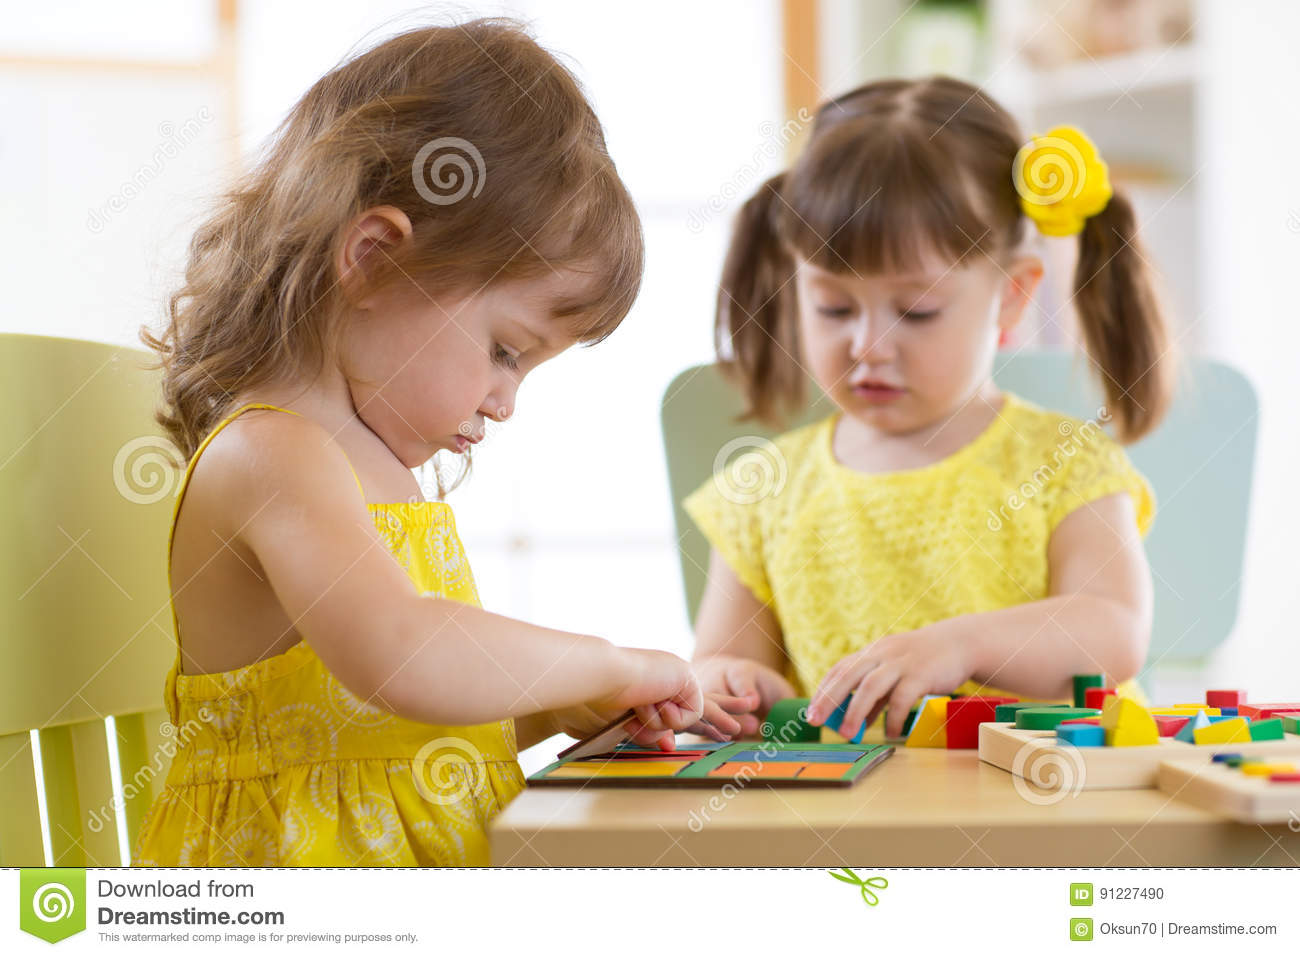 Kinder Garden: Kids Playing With Logical Toy On Desk In Nursery Room Or